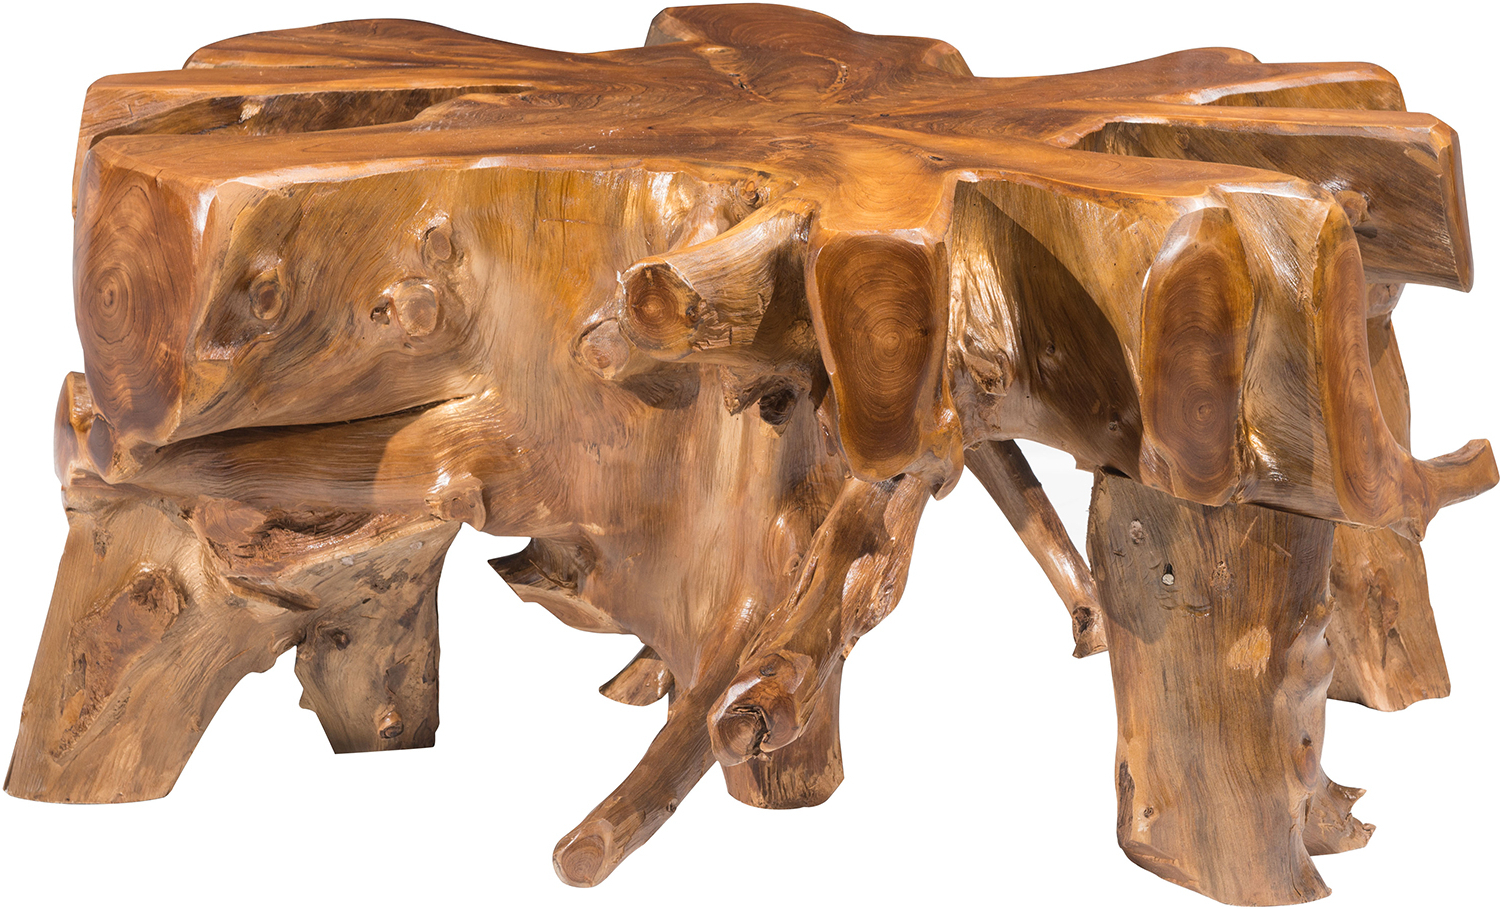 Broll Coffee Tables For Widely Used Broll 404232 Table (View 4 of 20)